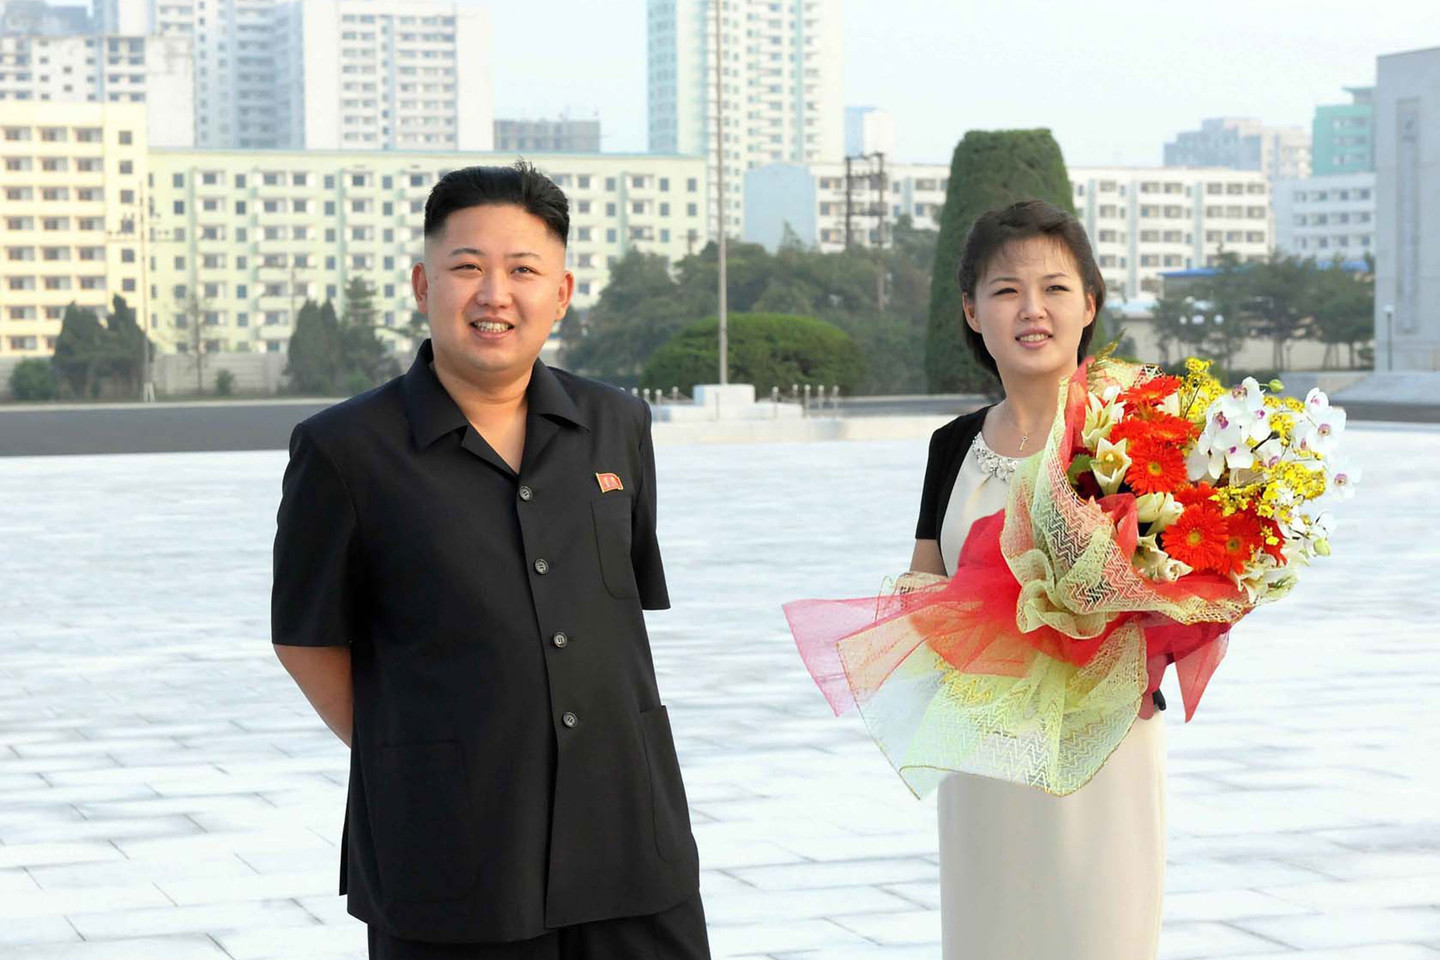 North Korean leader Kim Jong Un and his wife Ri Sol Ju, the First Lady